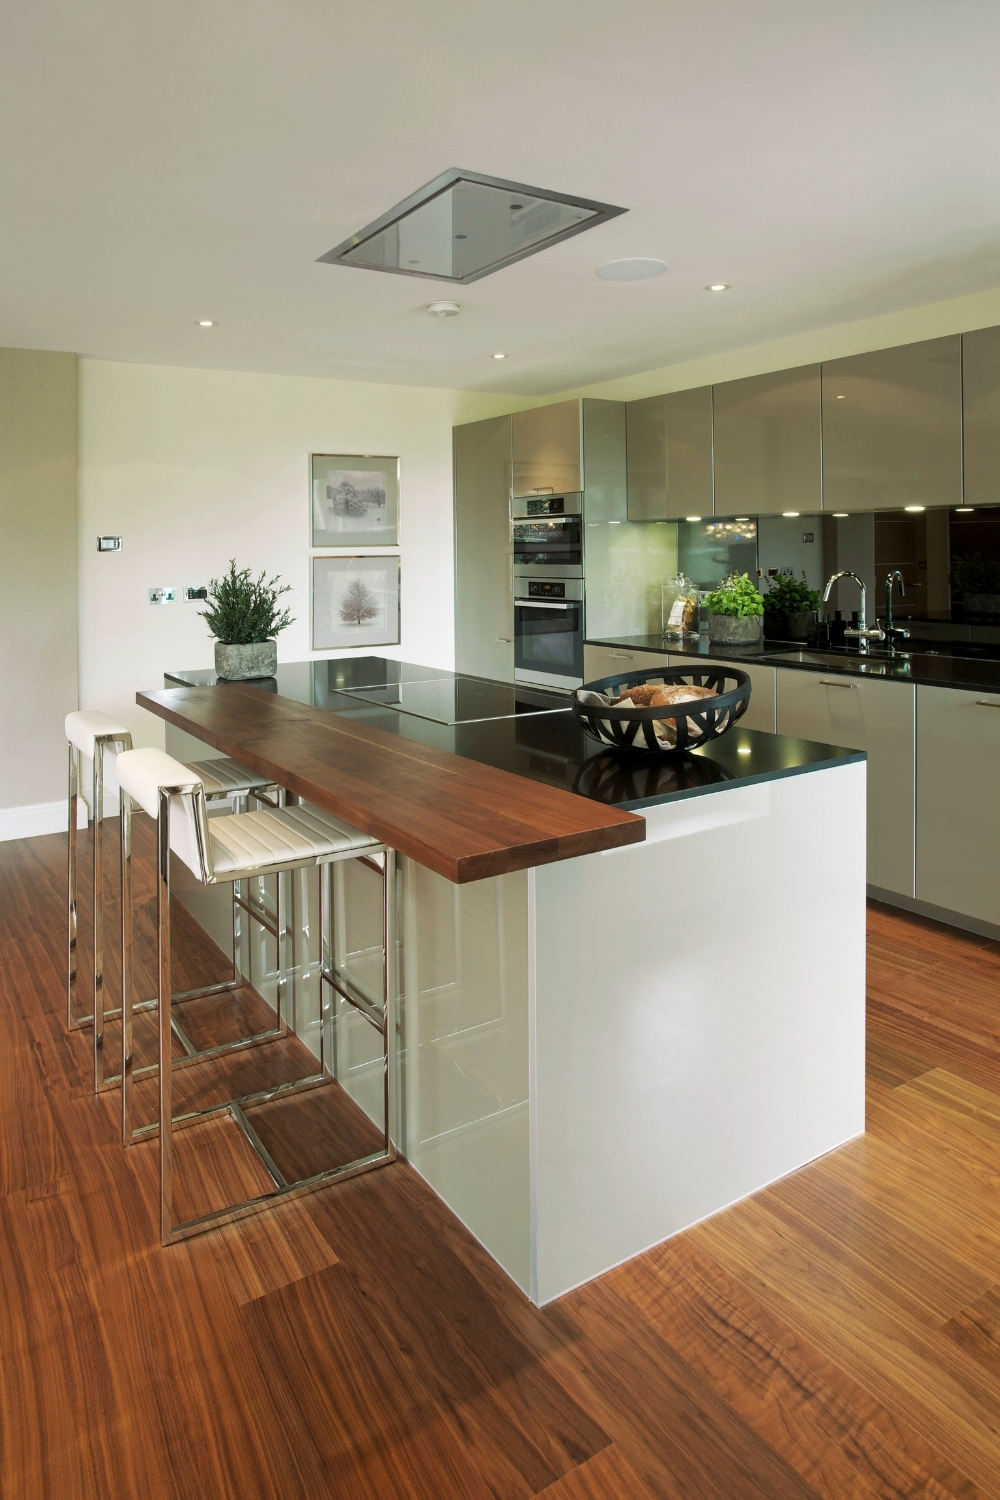 A worthwhile kitchen, the heart of any home